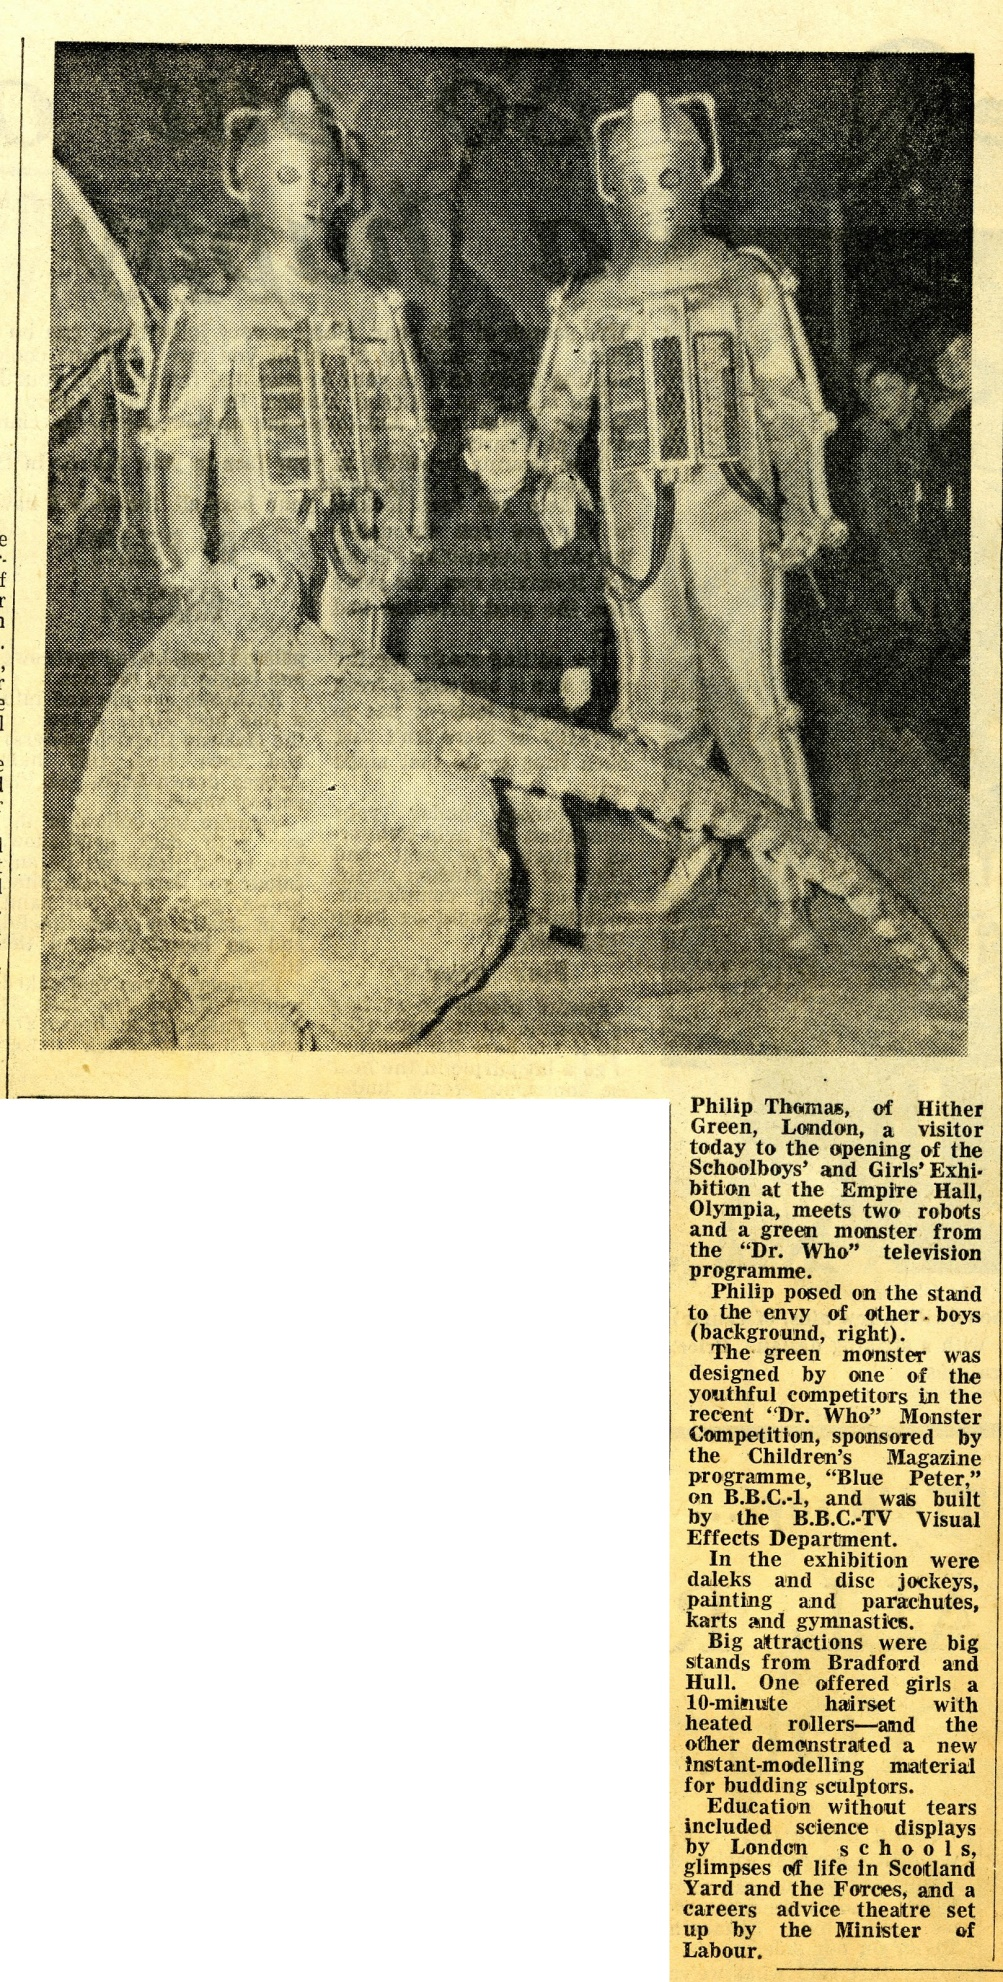 Article about Dr. Who Monsters at the Daily Mail Schoolboy & Girls Exhibition in the Yorkshire Evening Post, 27 December 1967